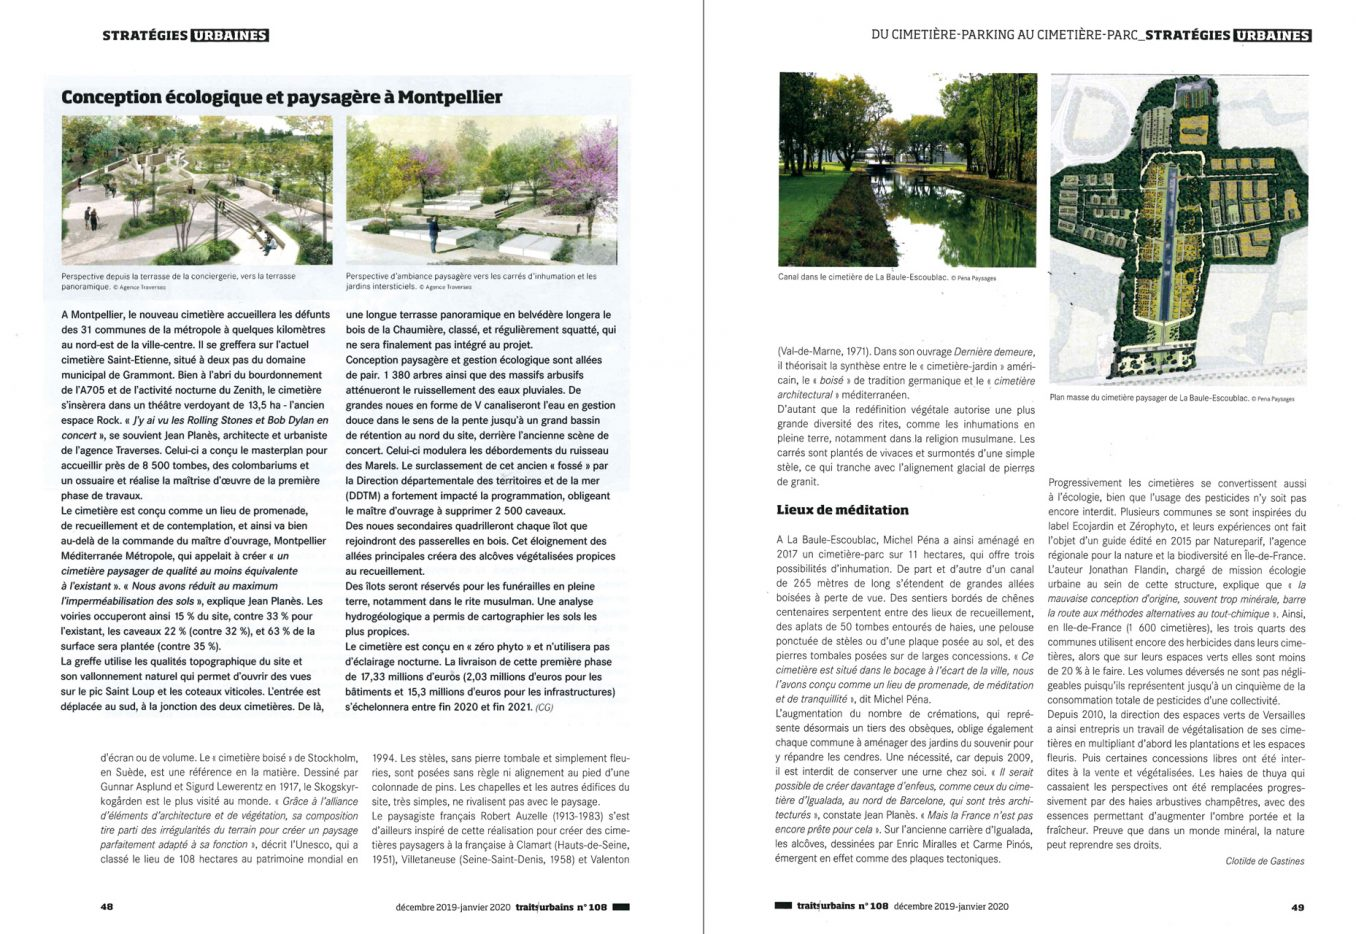 Traverses - Traits Urbains - Janvier 2020 - pages 48-49